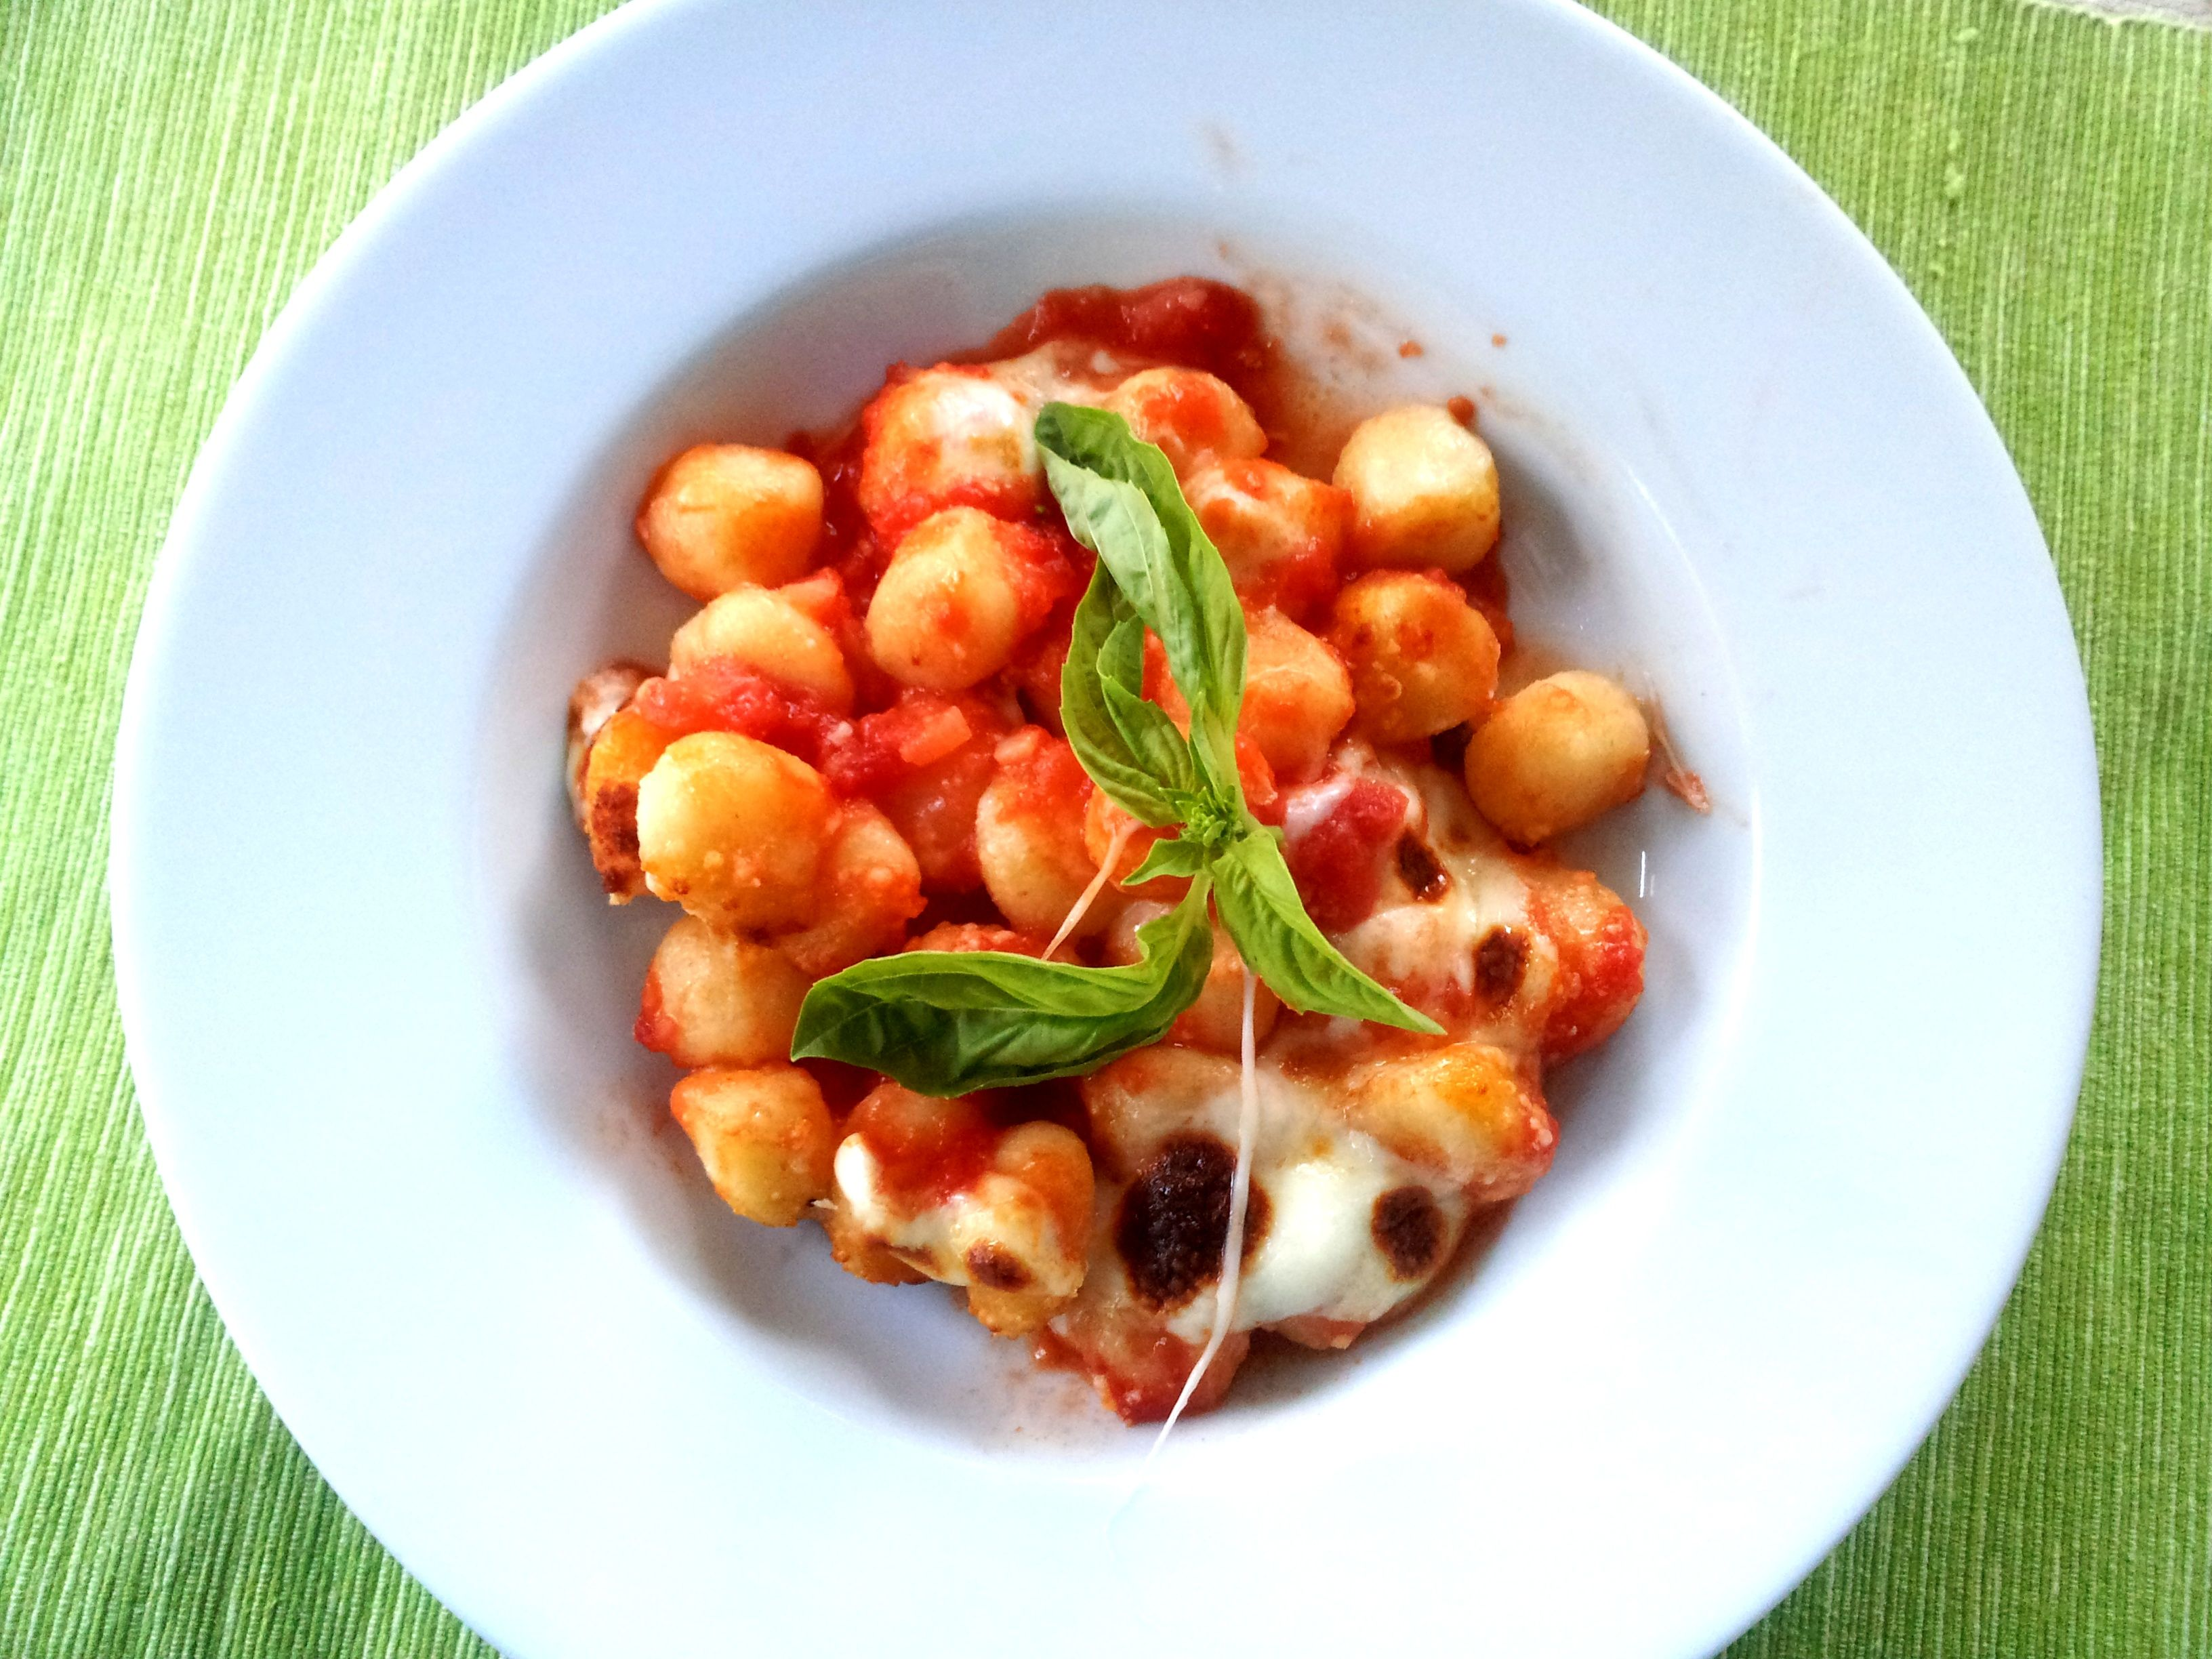 """This classic Italian dish starts with a package of potato gnocchi and canned crushed tomatoes. """"Known as 'gnocchi alla sorrentina,' this classic Italian pasta dish uses simple ingredients and tastes delicious,"""" says saretta. """"Use homemade or store-bought gnocchi."""""""